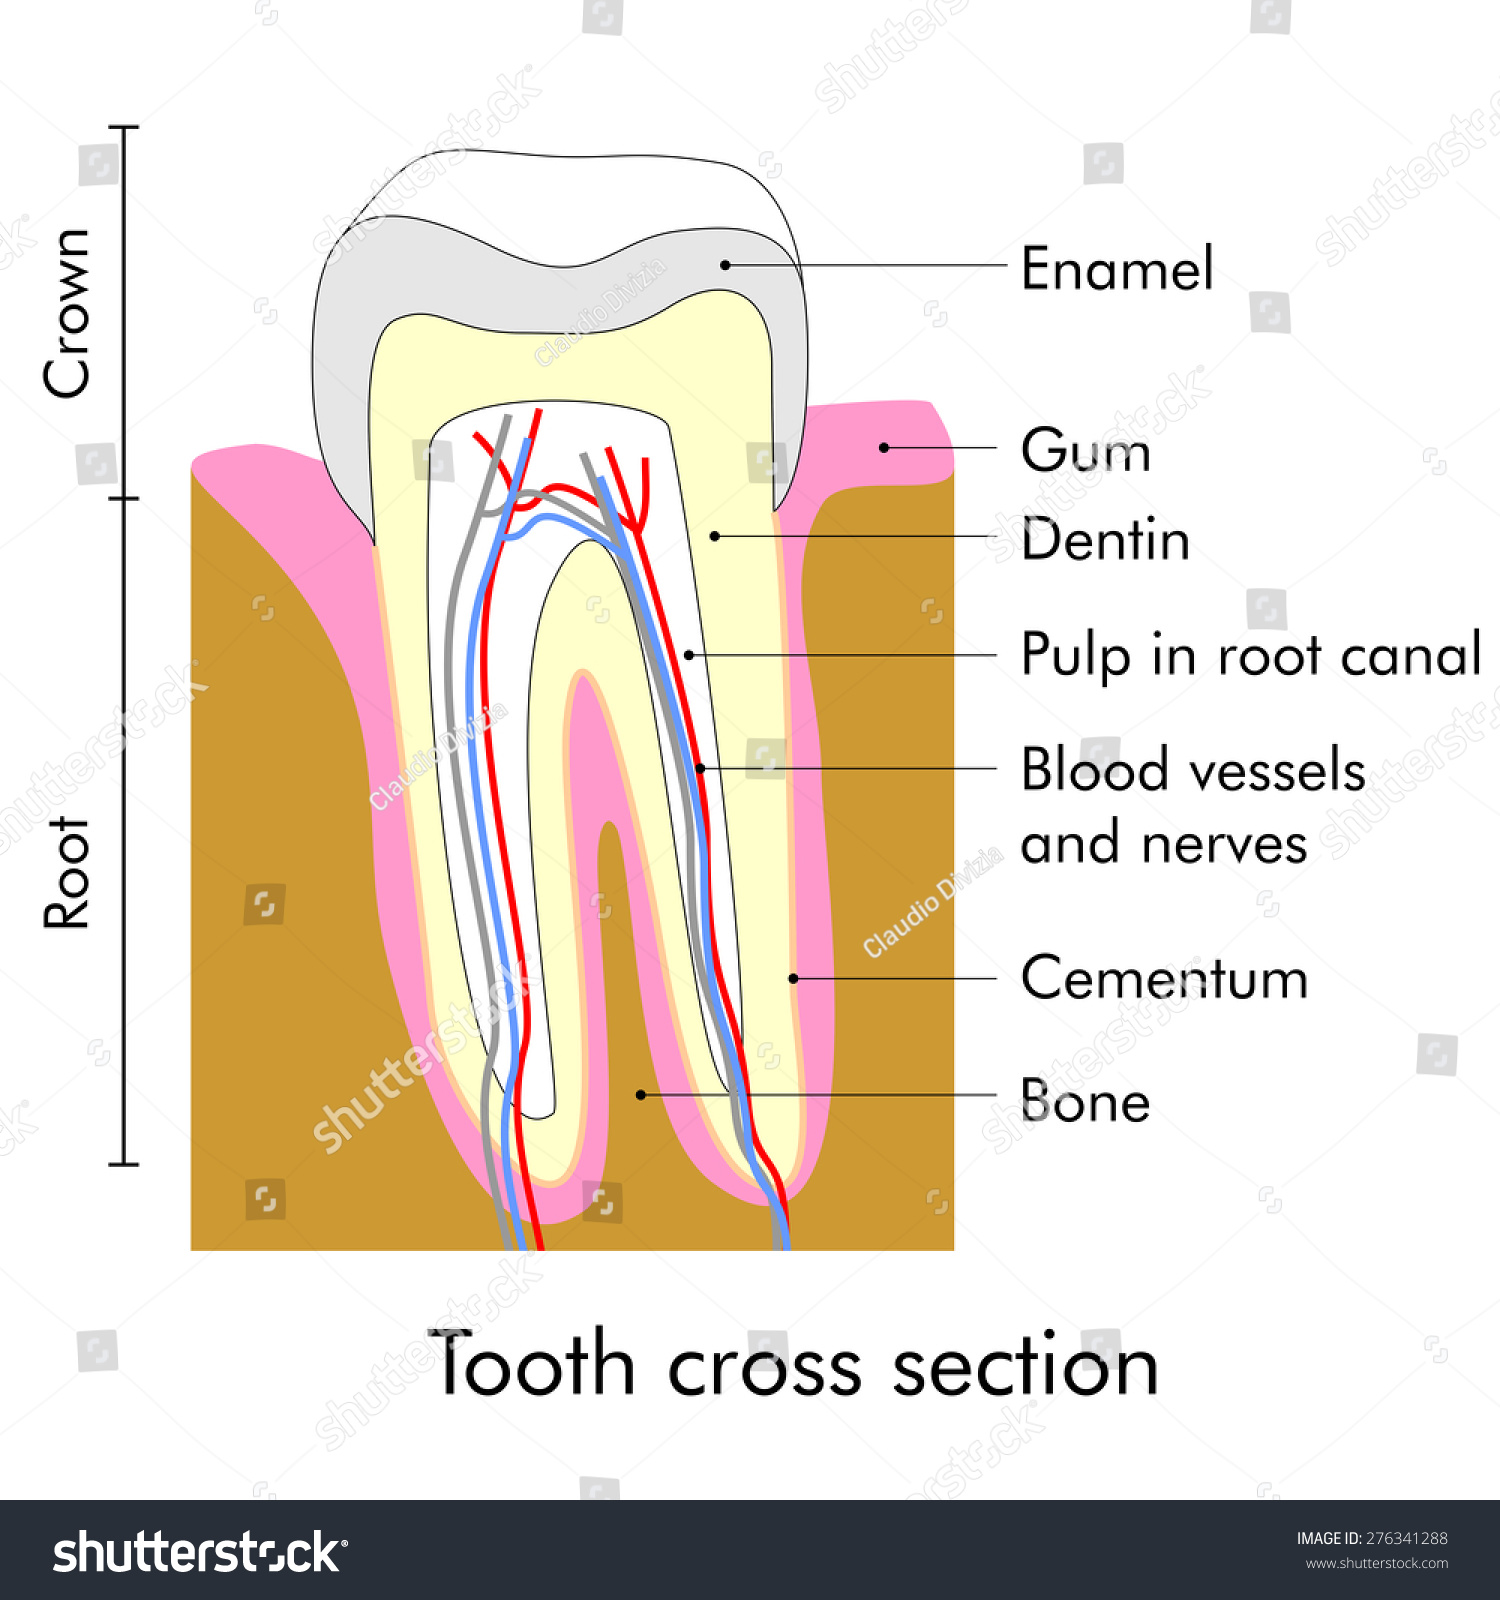 hight resolution of tooth cross section showing teeth anatomy